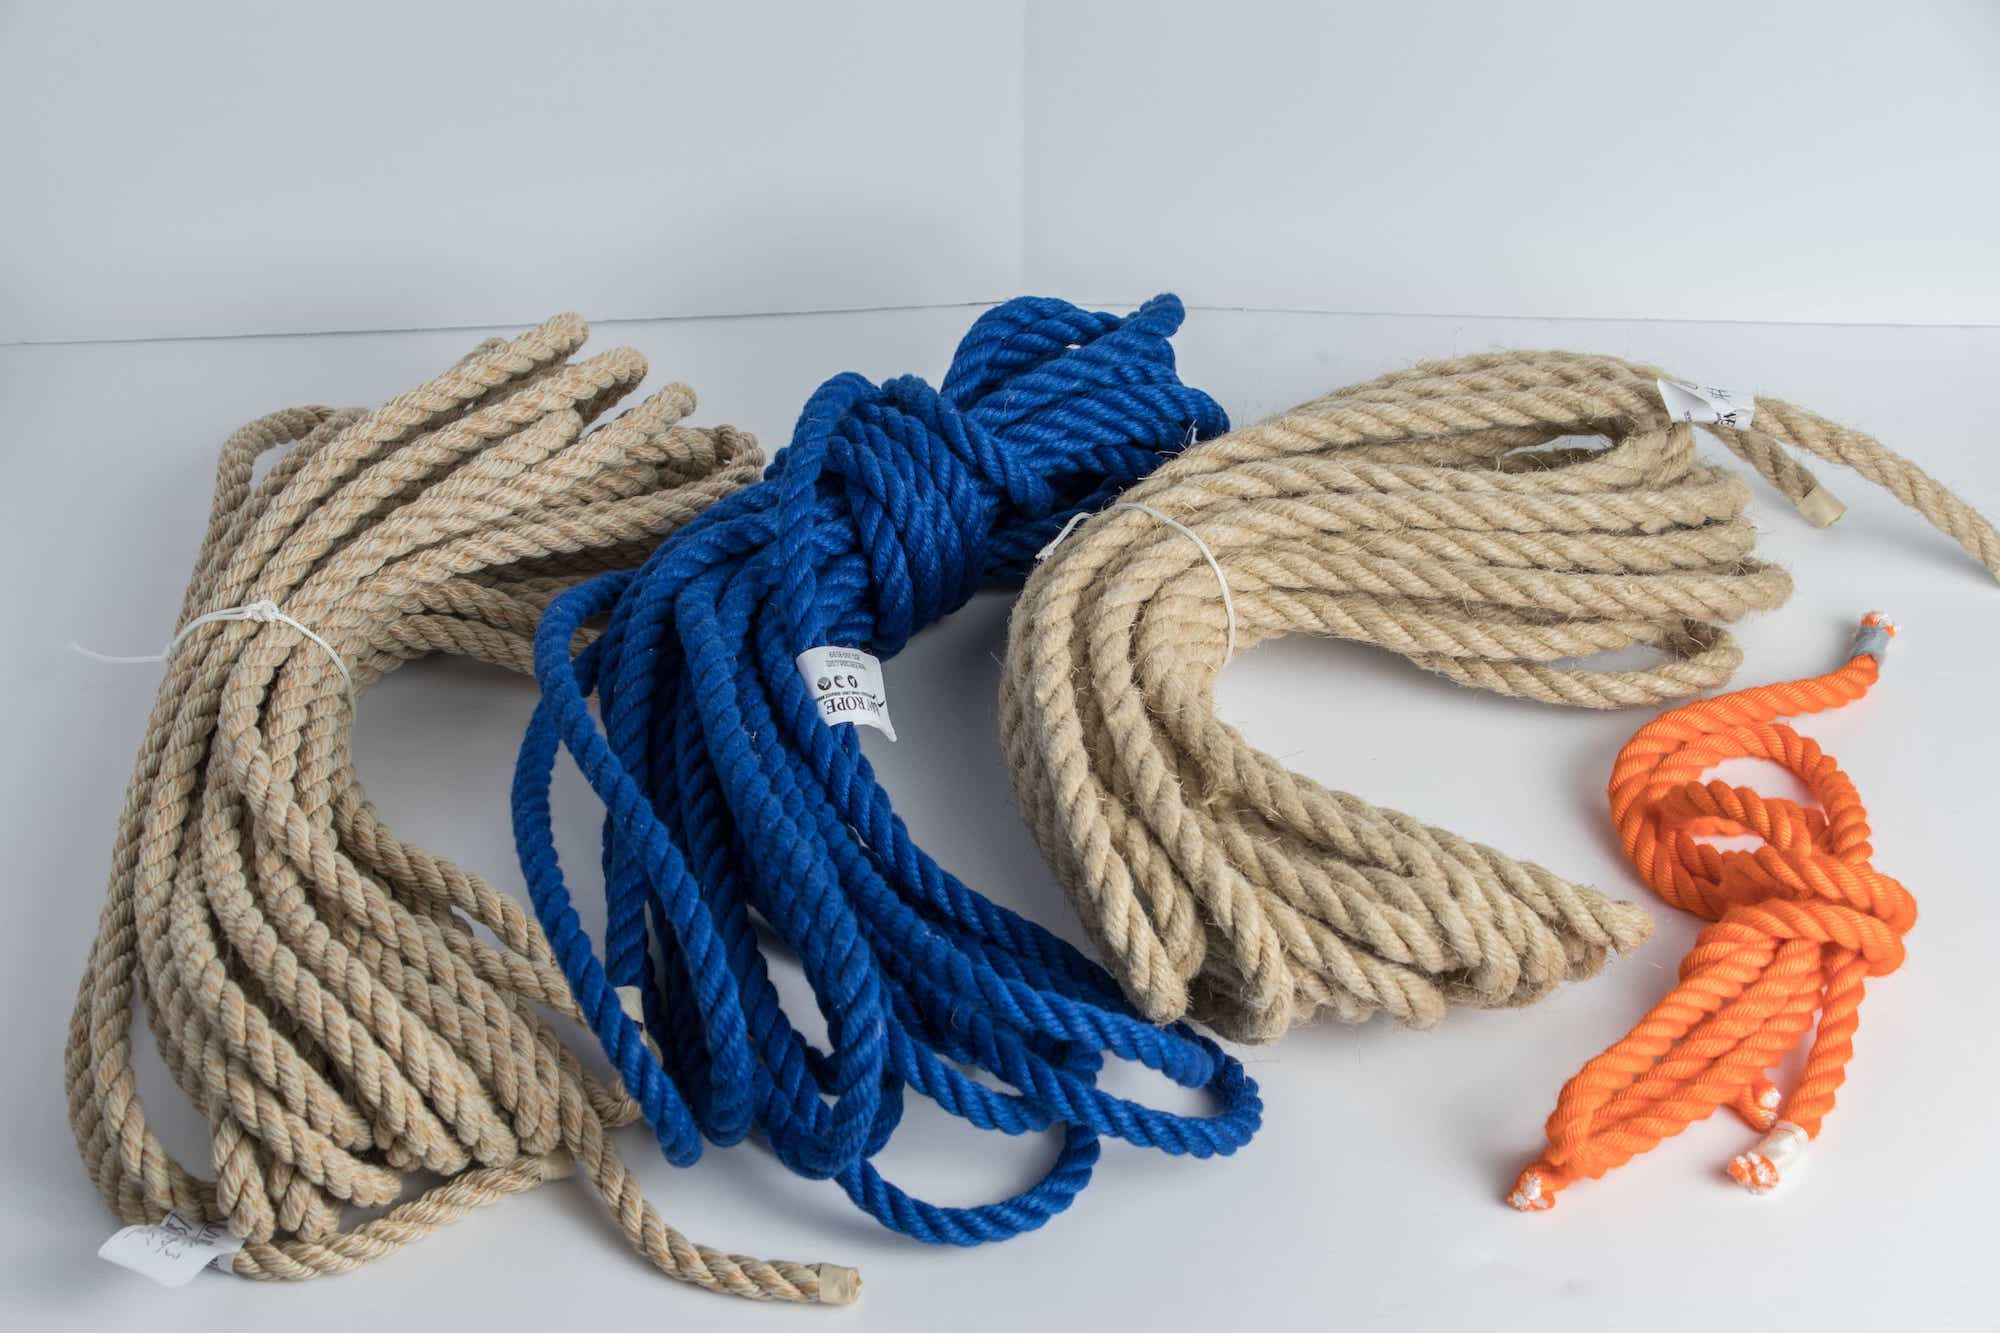 Shimedaiko rope used for testing